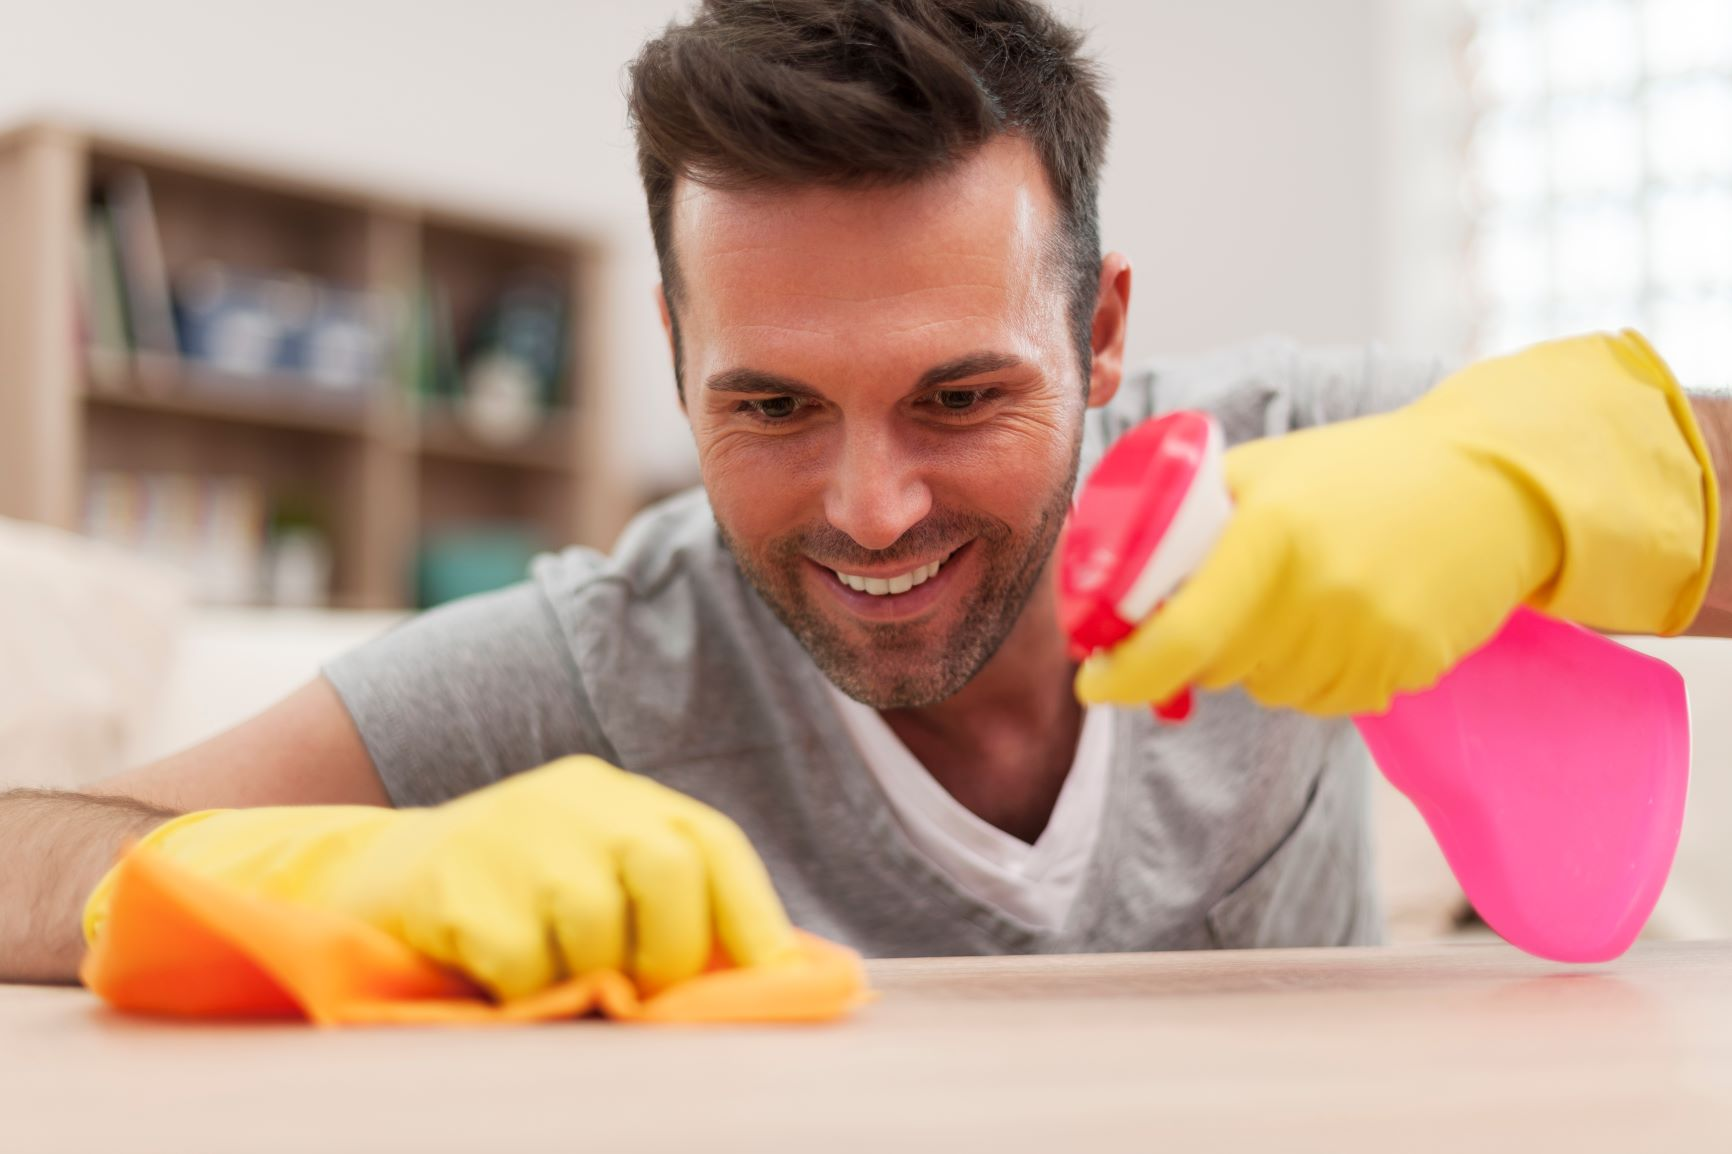 Areas to be disinfected in your home during this quarantine